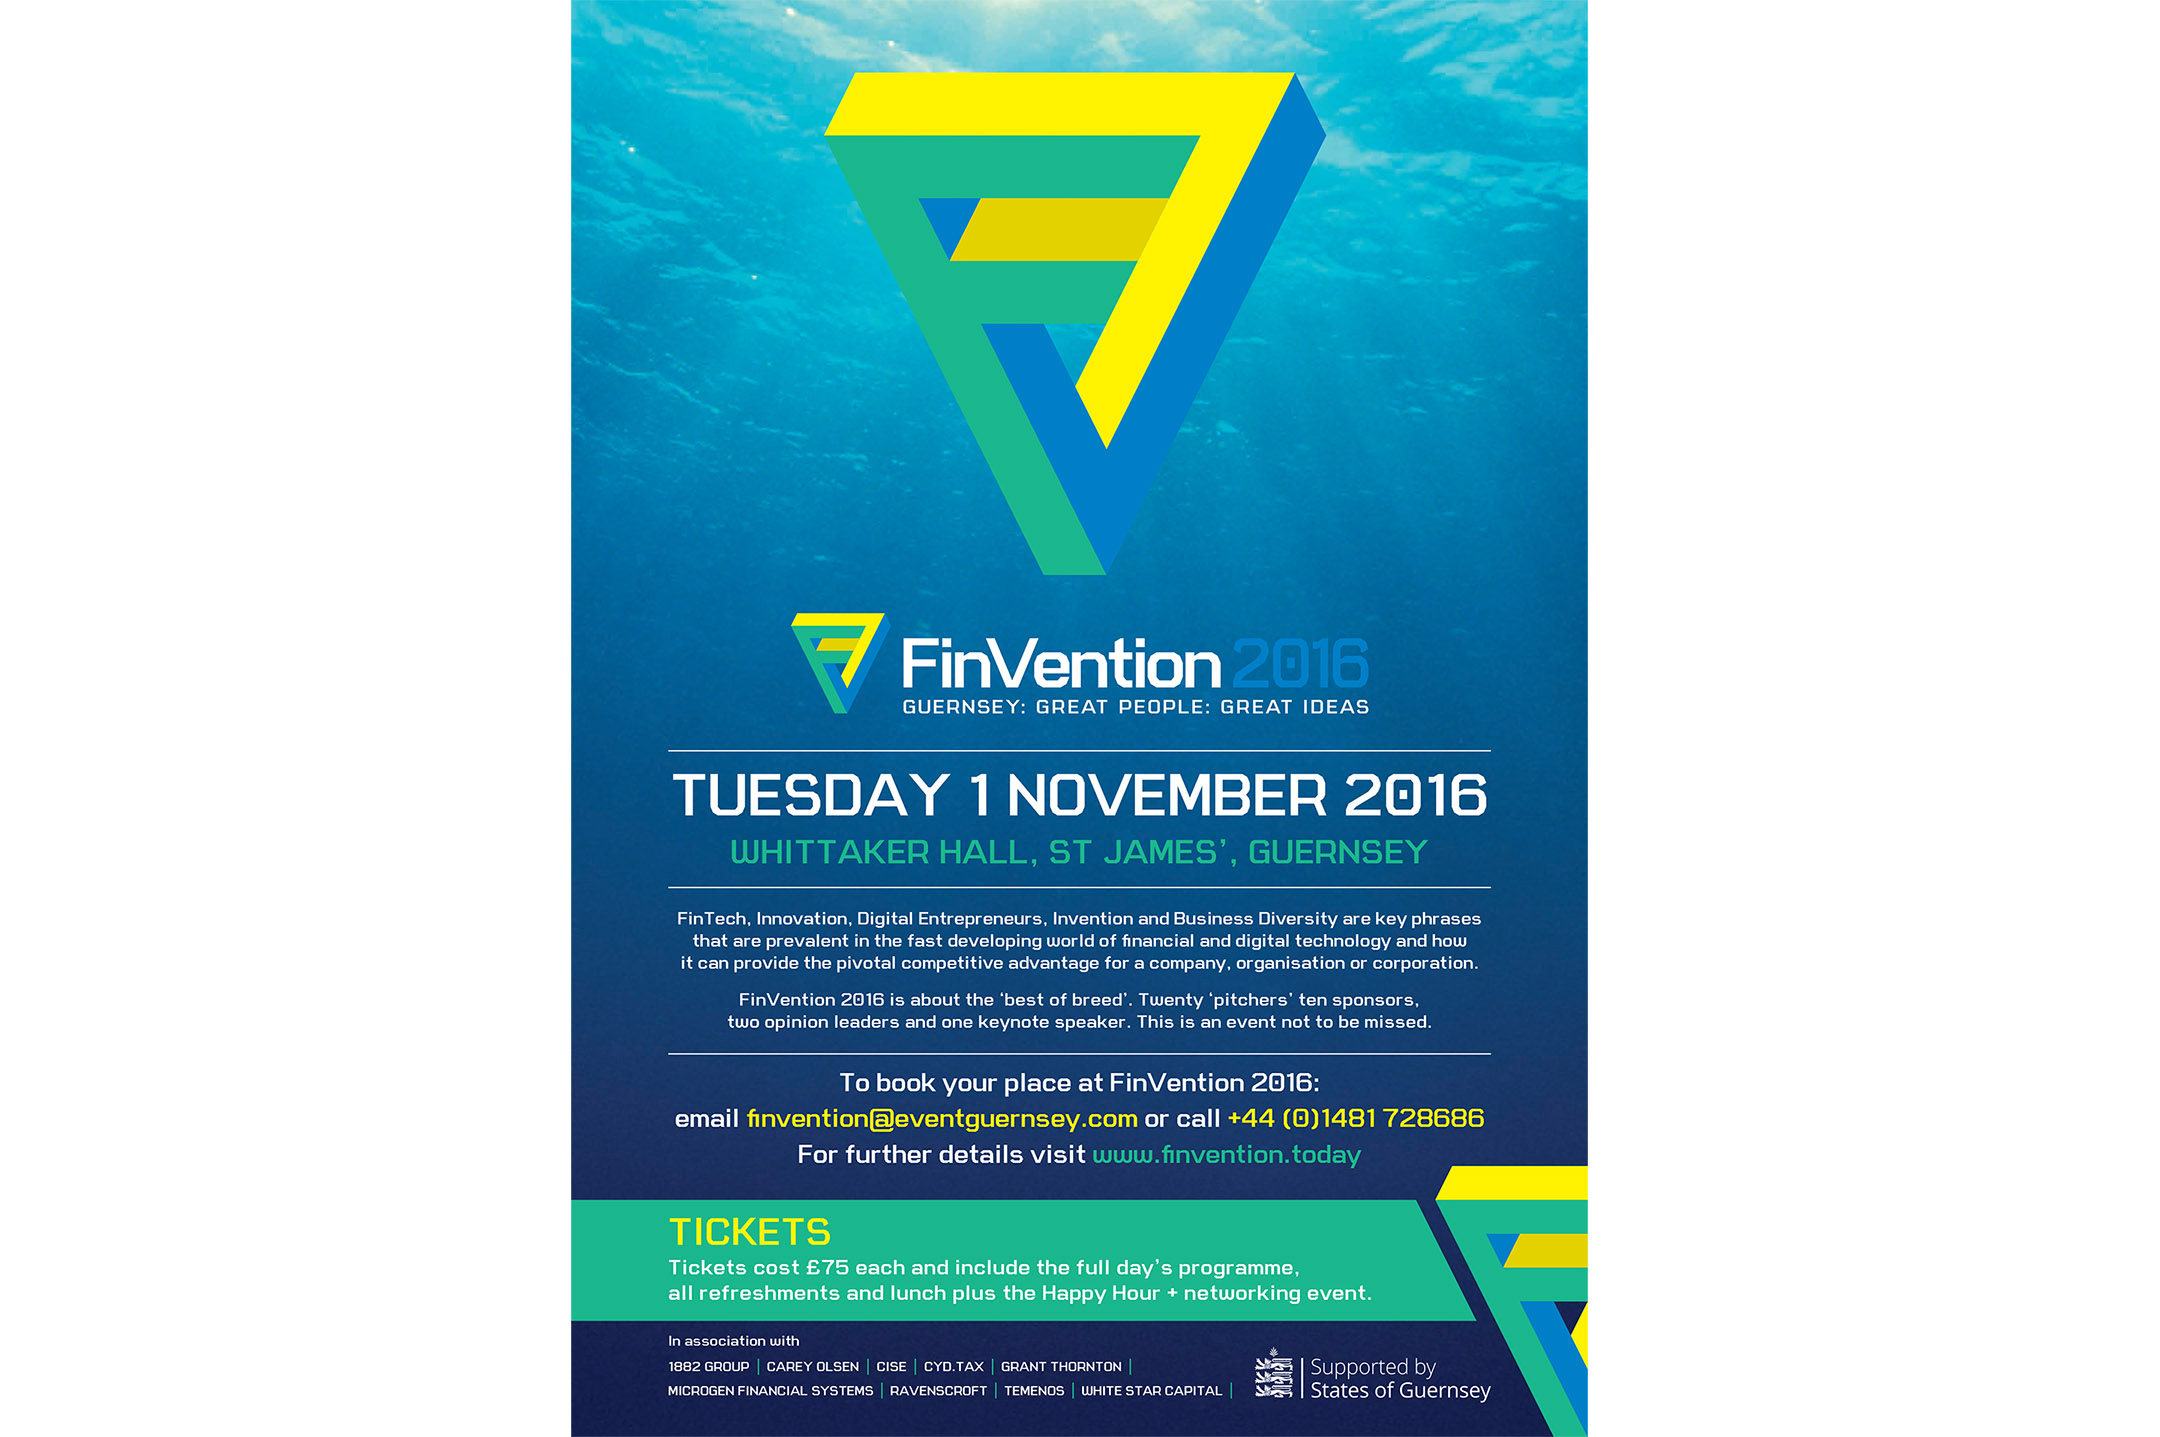 FinVention 2016: Presenting the best of digital and fintech products in Guernsey